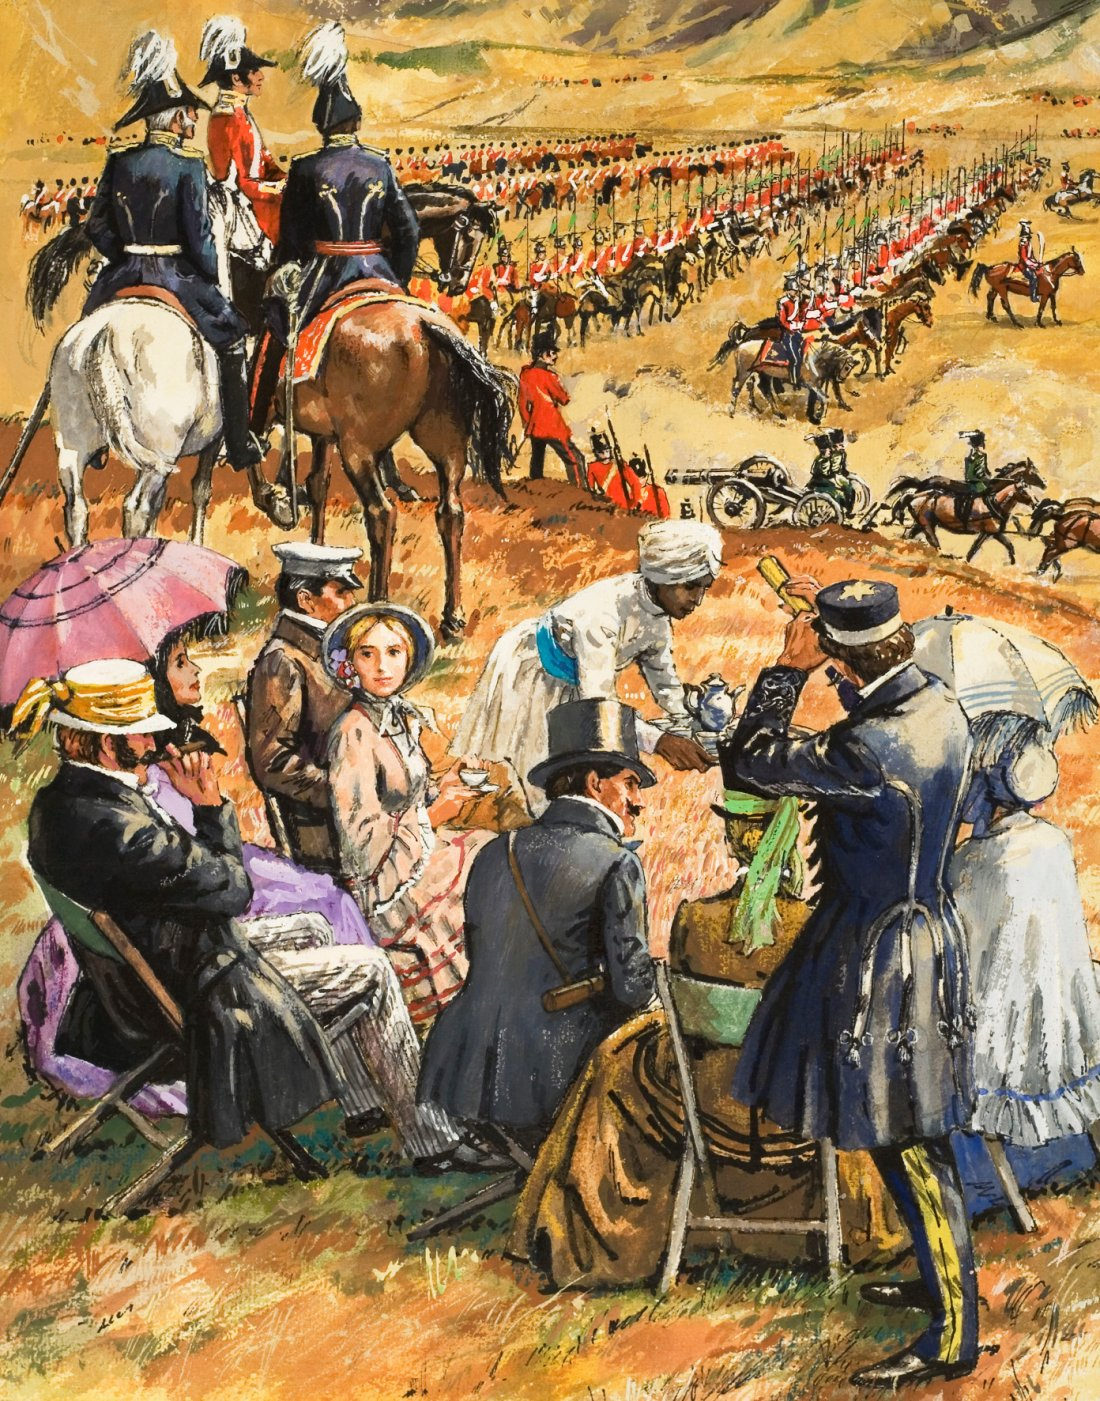 Leo Davy, Eine Picknick-Party über dem Schauplatz einer bevorstehenden Schlacht während des Krimkriegs, 1971, Gouache auf Papier, Illustration in der Zeitschrift Look and Learn, Nr. 491, S. 5,